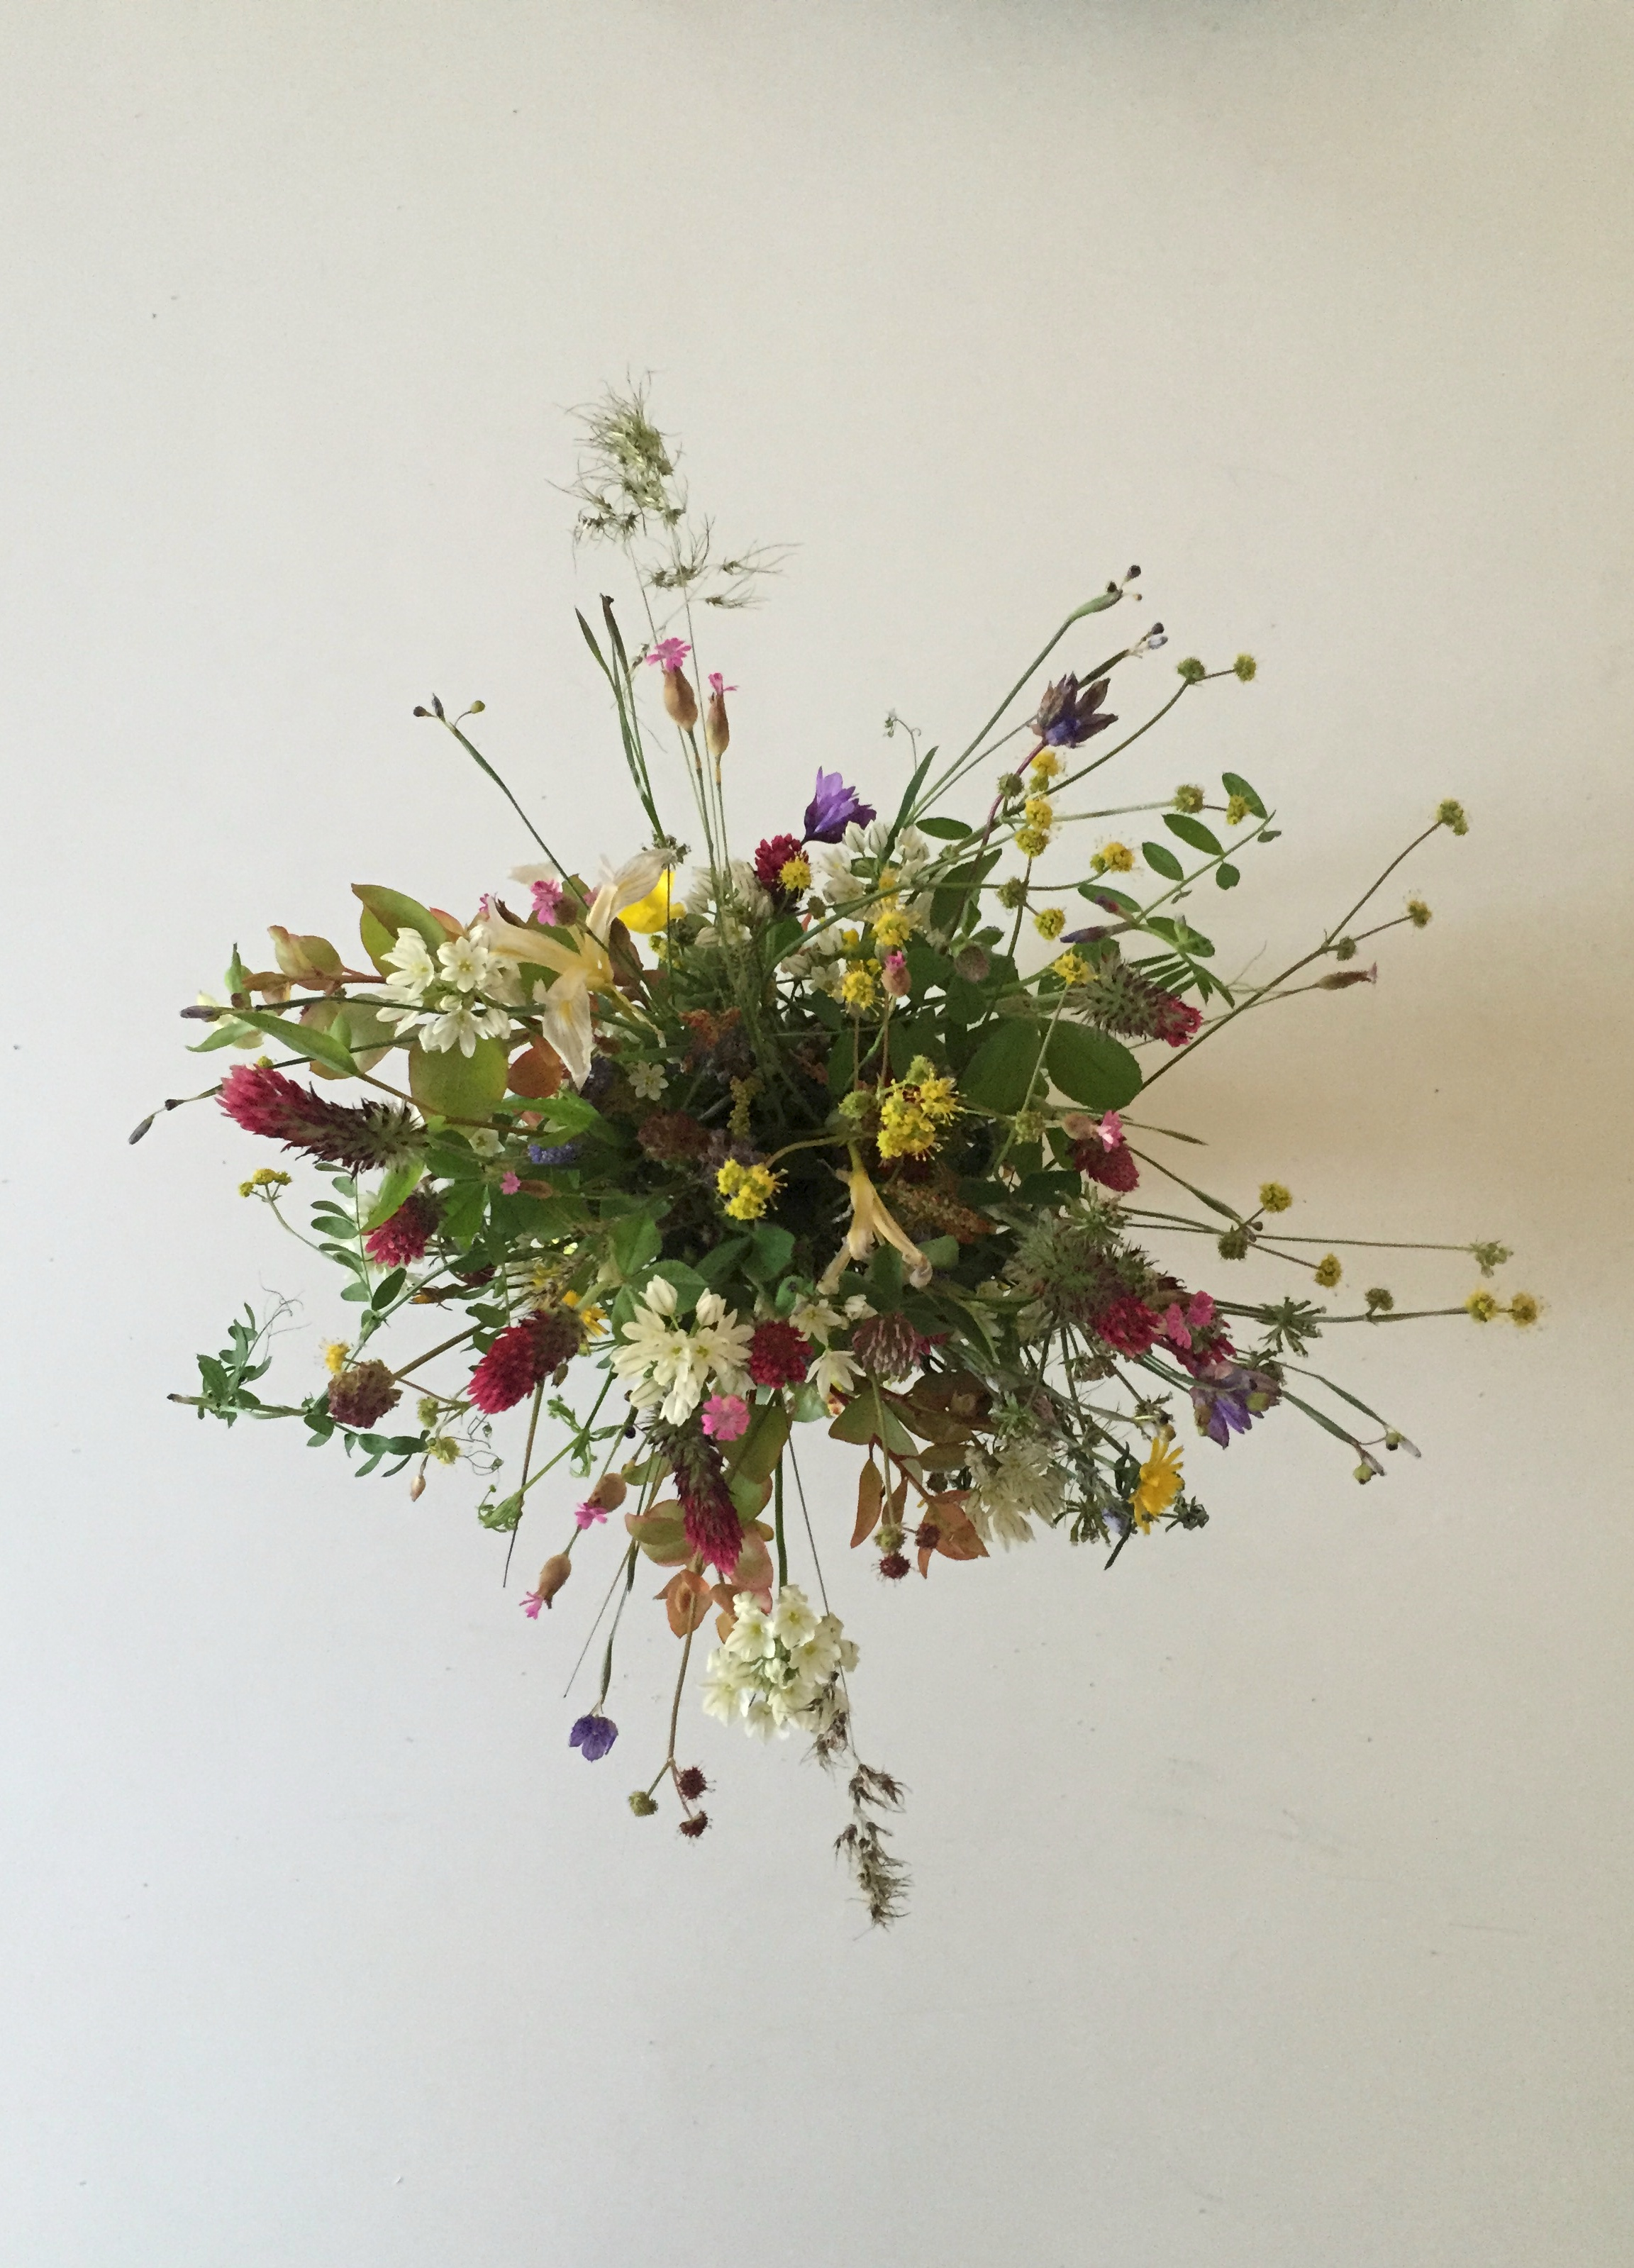 One of the bouquets.